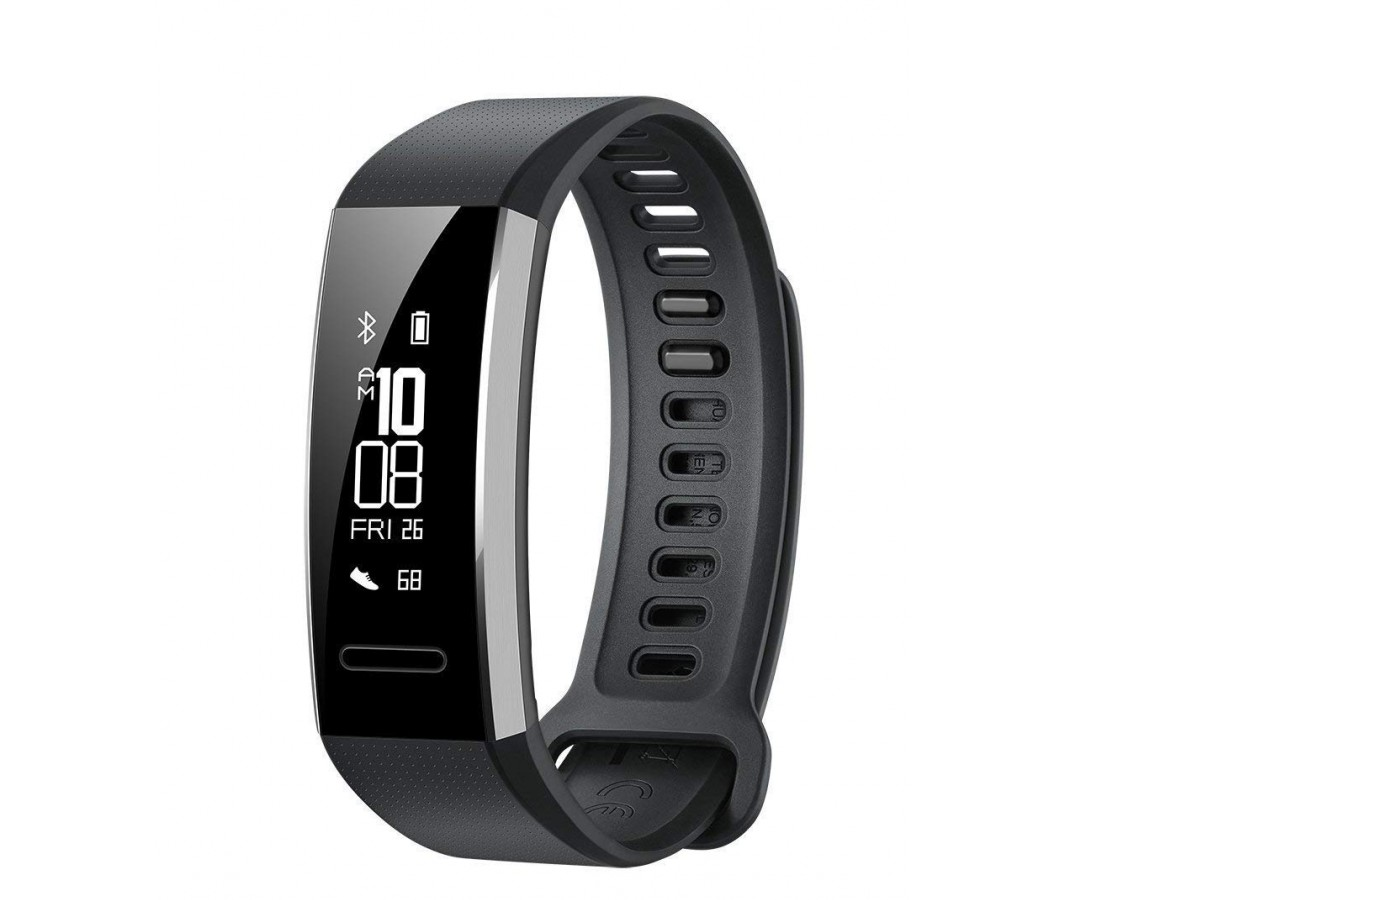 The Huawei Band 2 Pro is a non-interchangeable style band with a PMOLED screen and sleep, single-color design for simplicity and function.